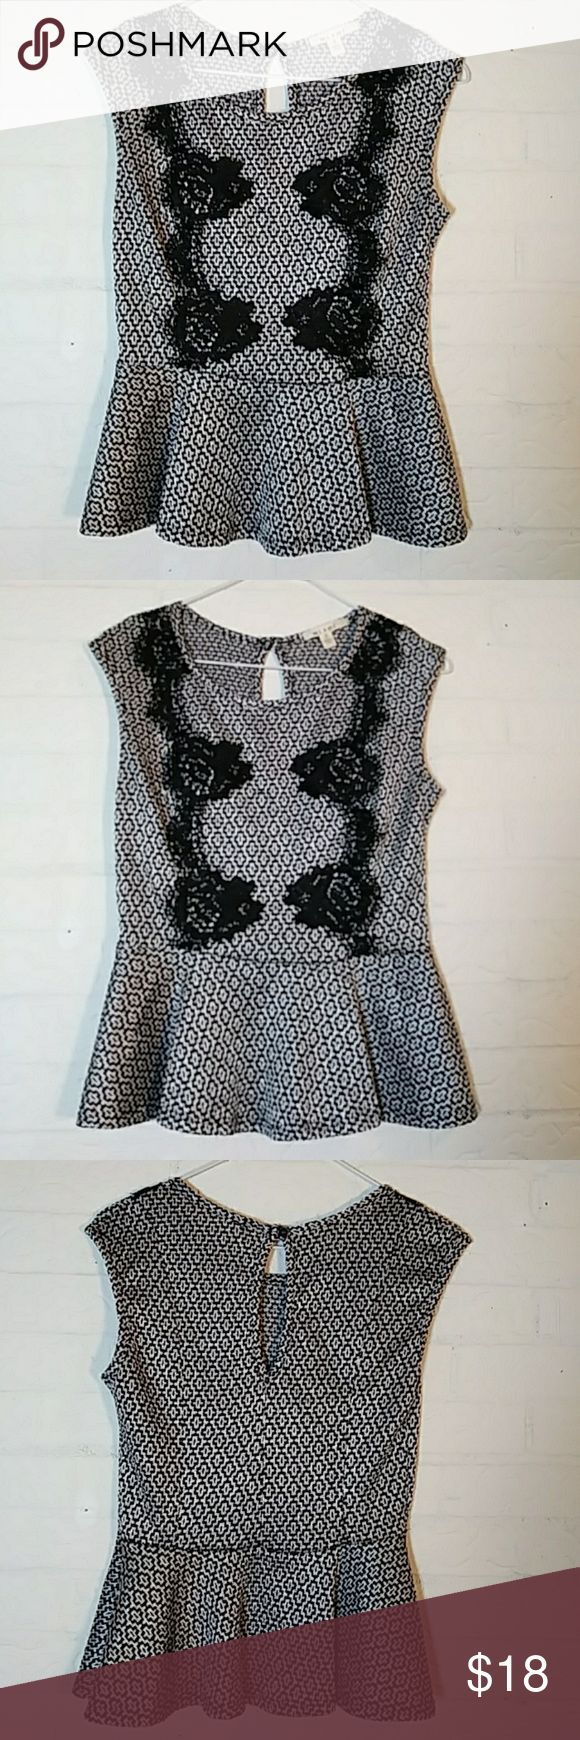 Black and White Peplum Top by Miami Black white geometric peplum top with black floral lace overlay. miami Tops Blouses